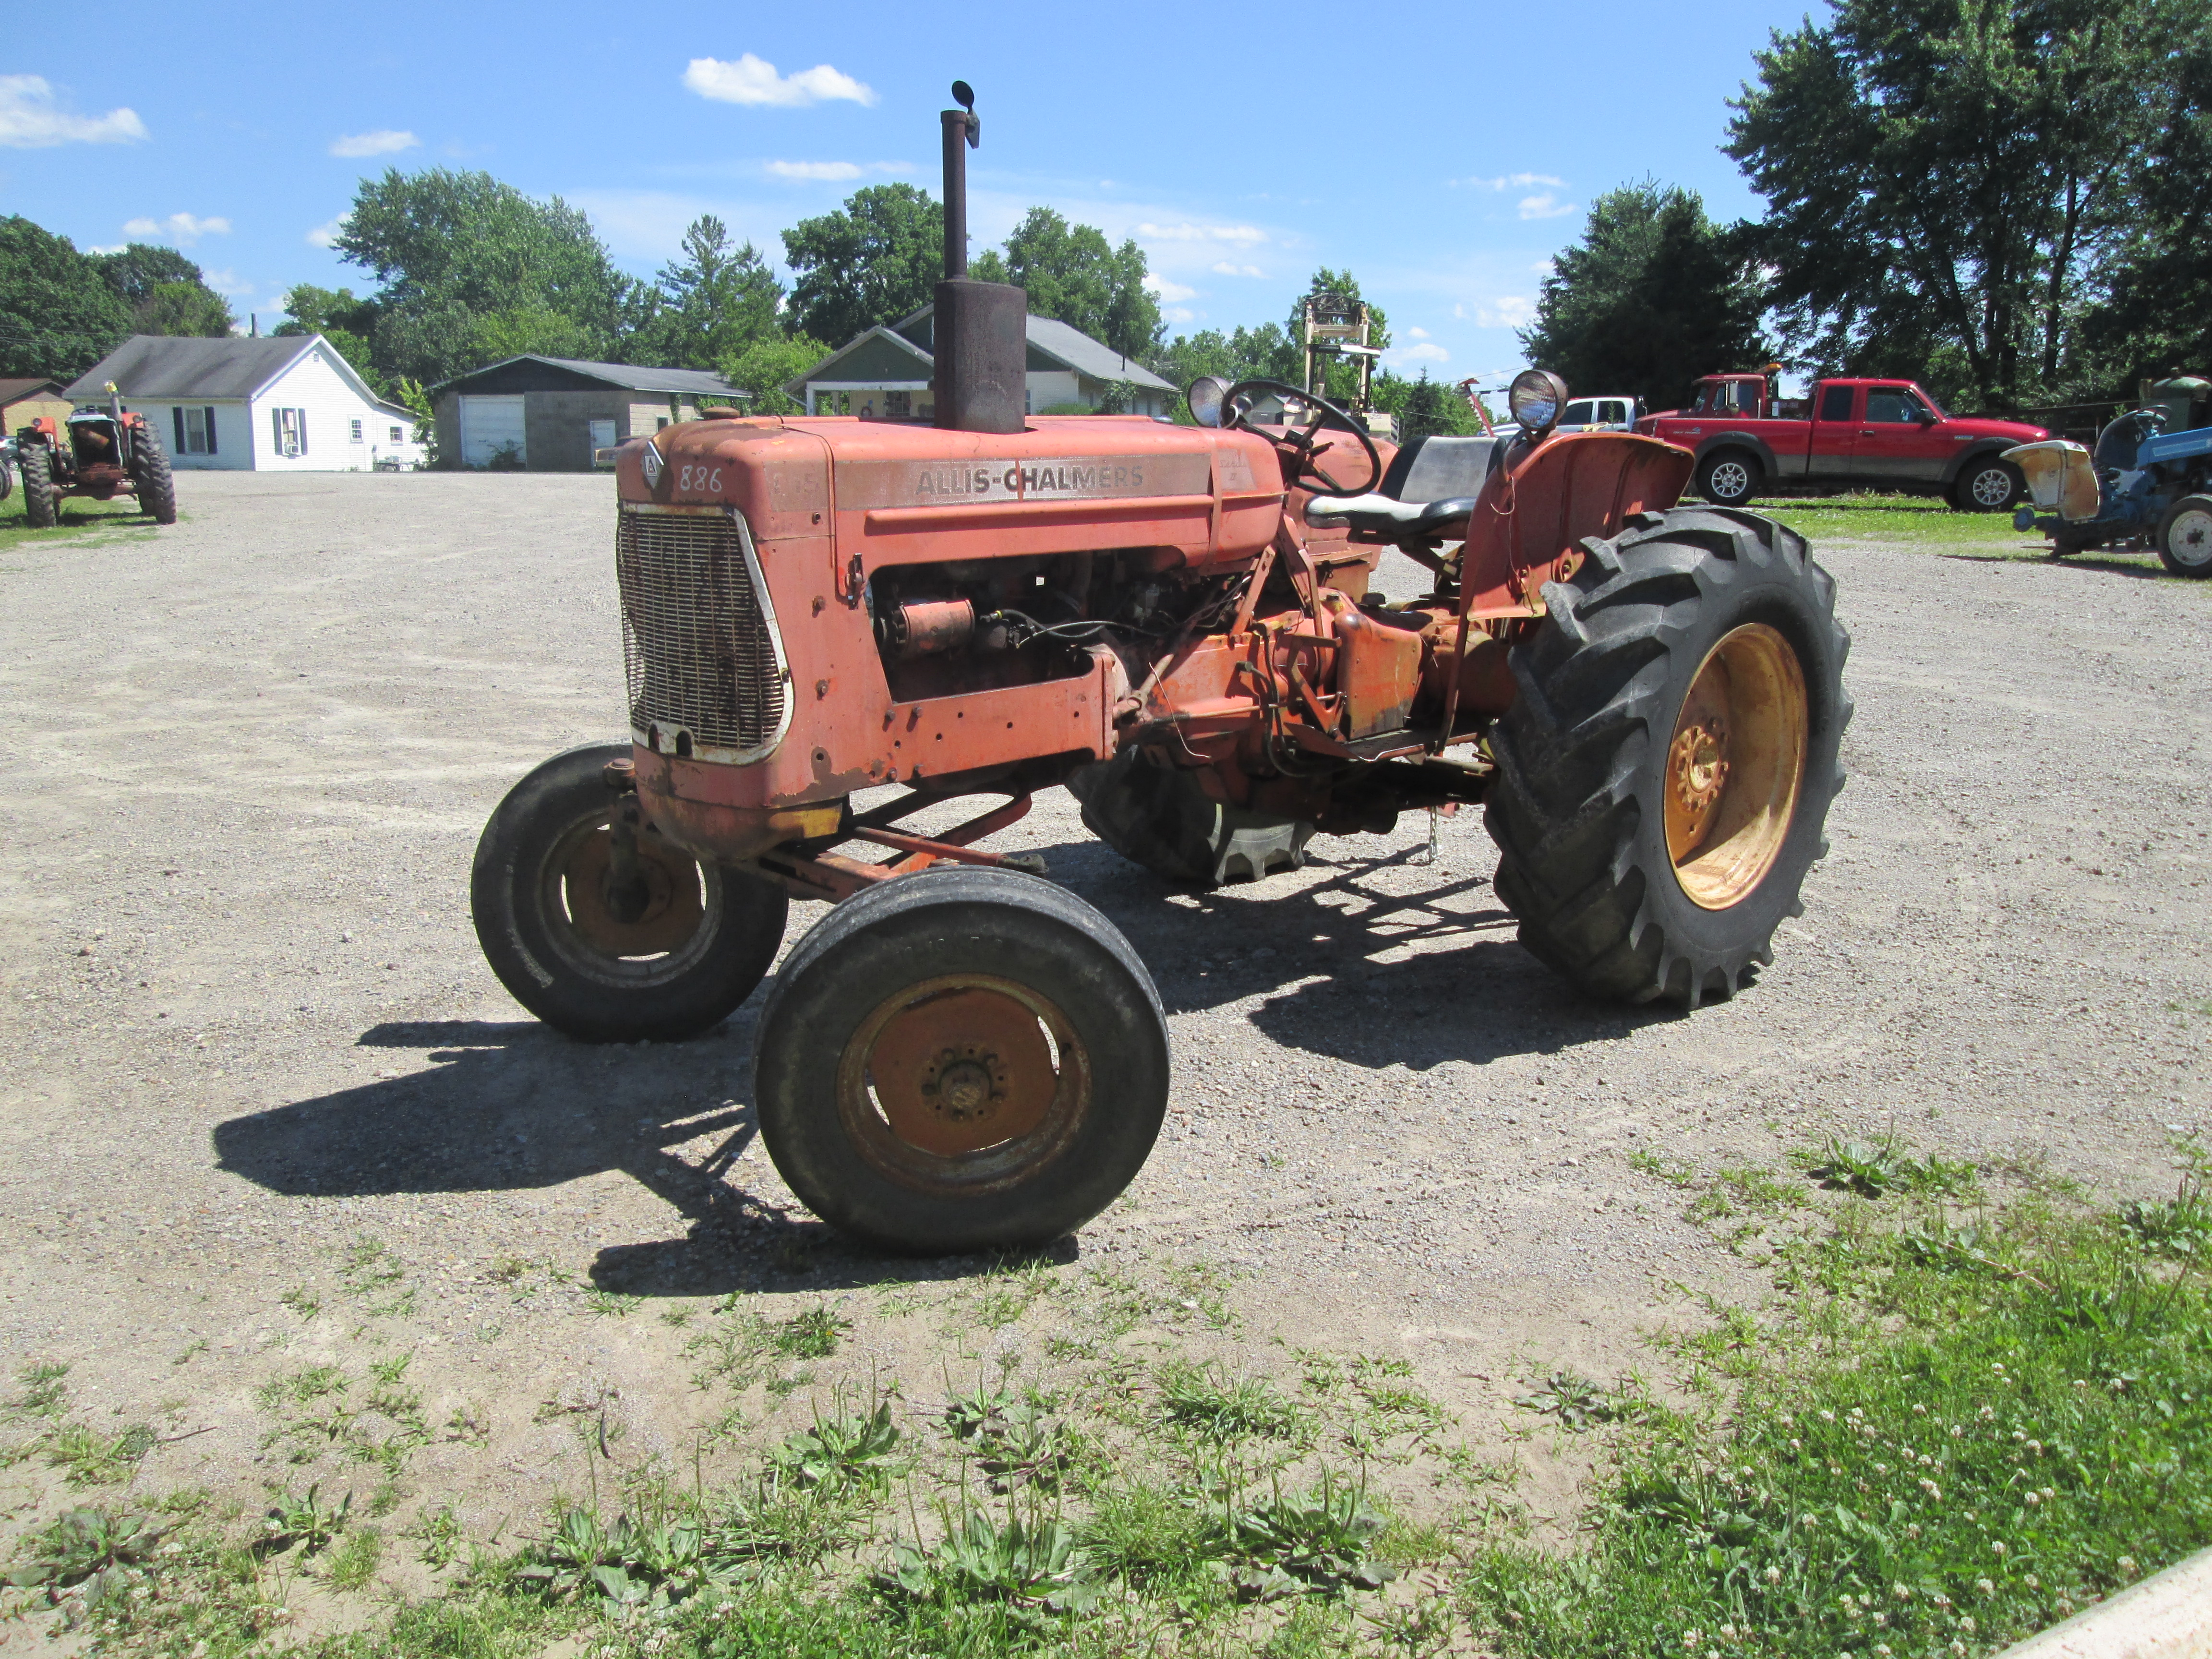 Allis Chalmers D15 gas Engine